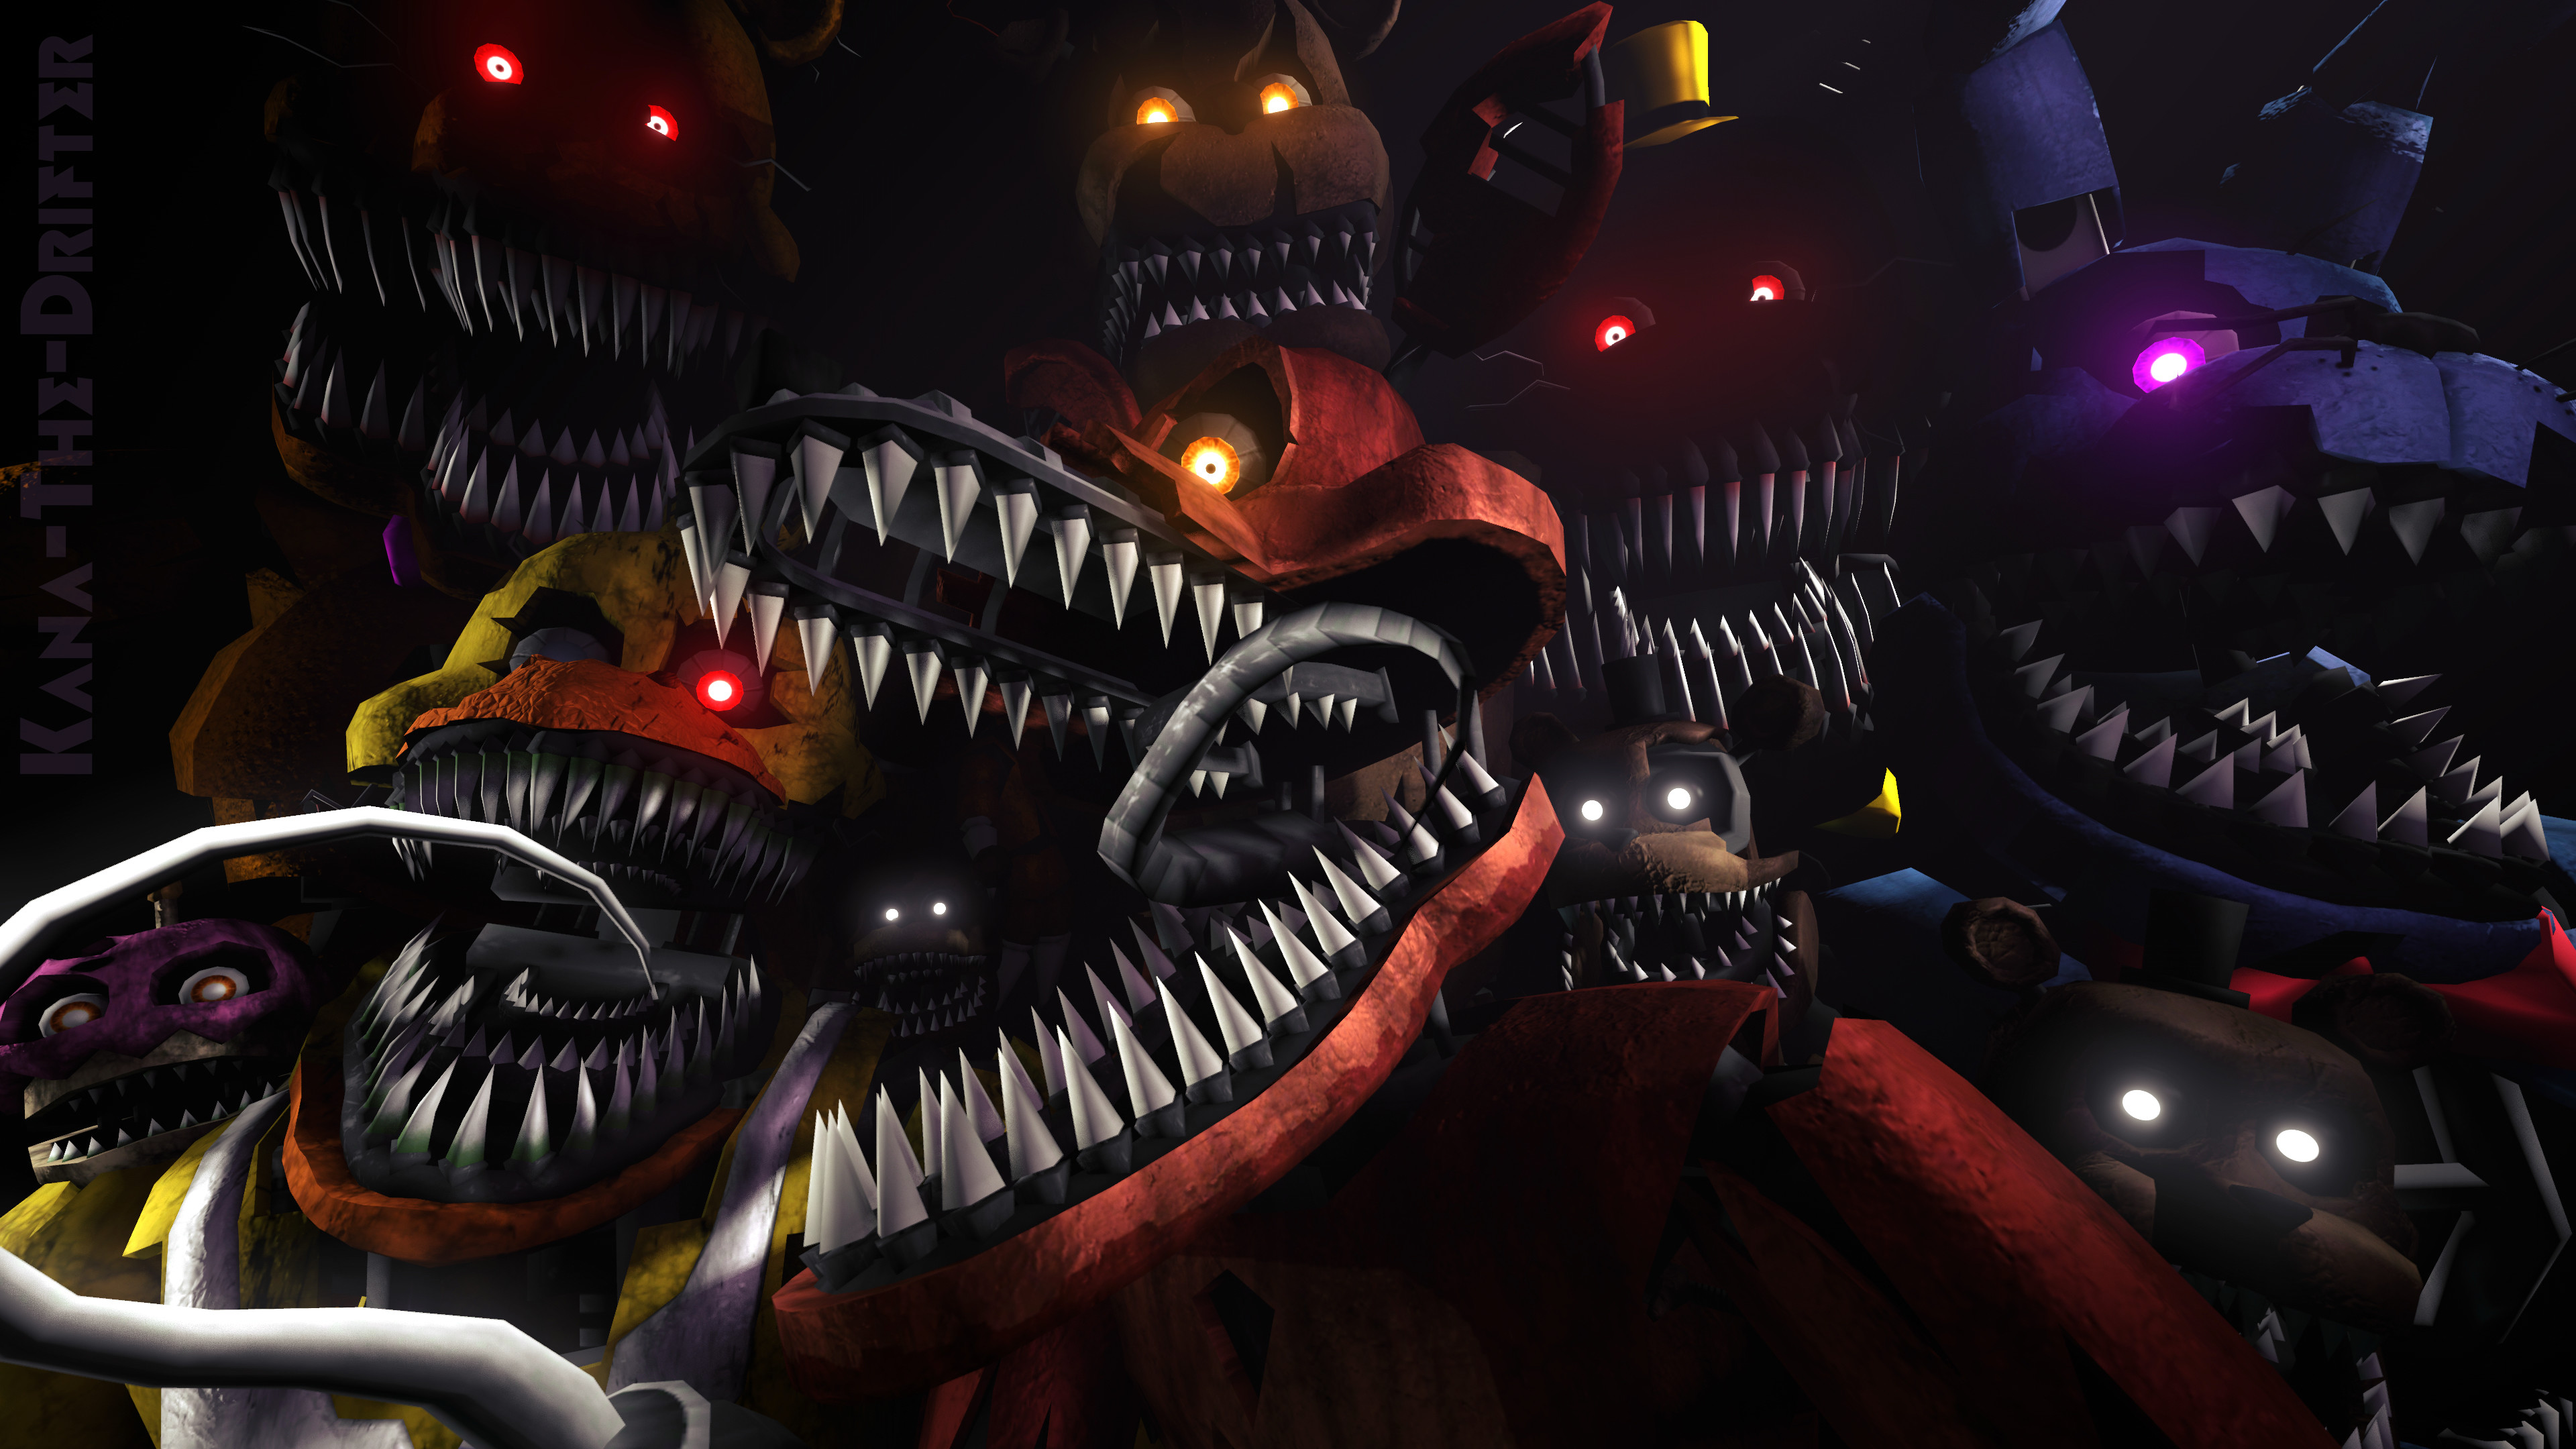 Res: 3840x2160, We'll Stay Here Forever (FNAF SFM Wallpaper) by Kana-The-